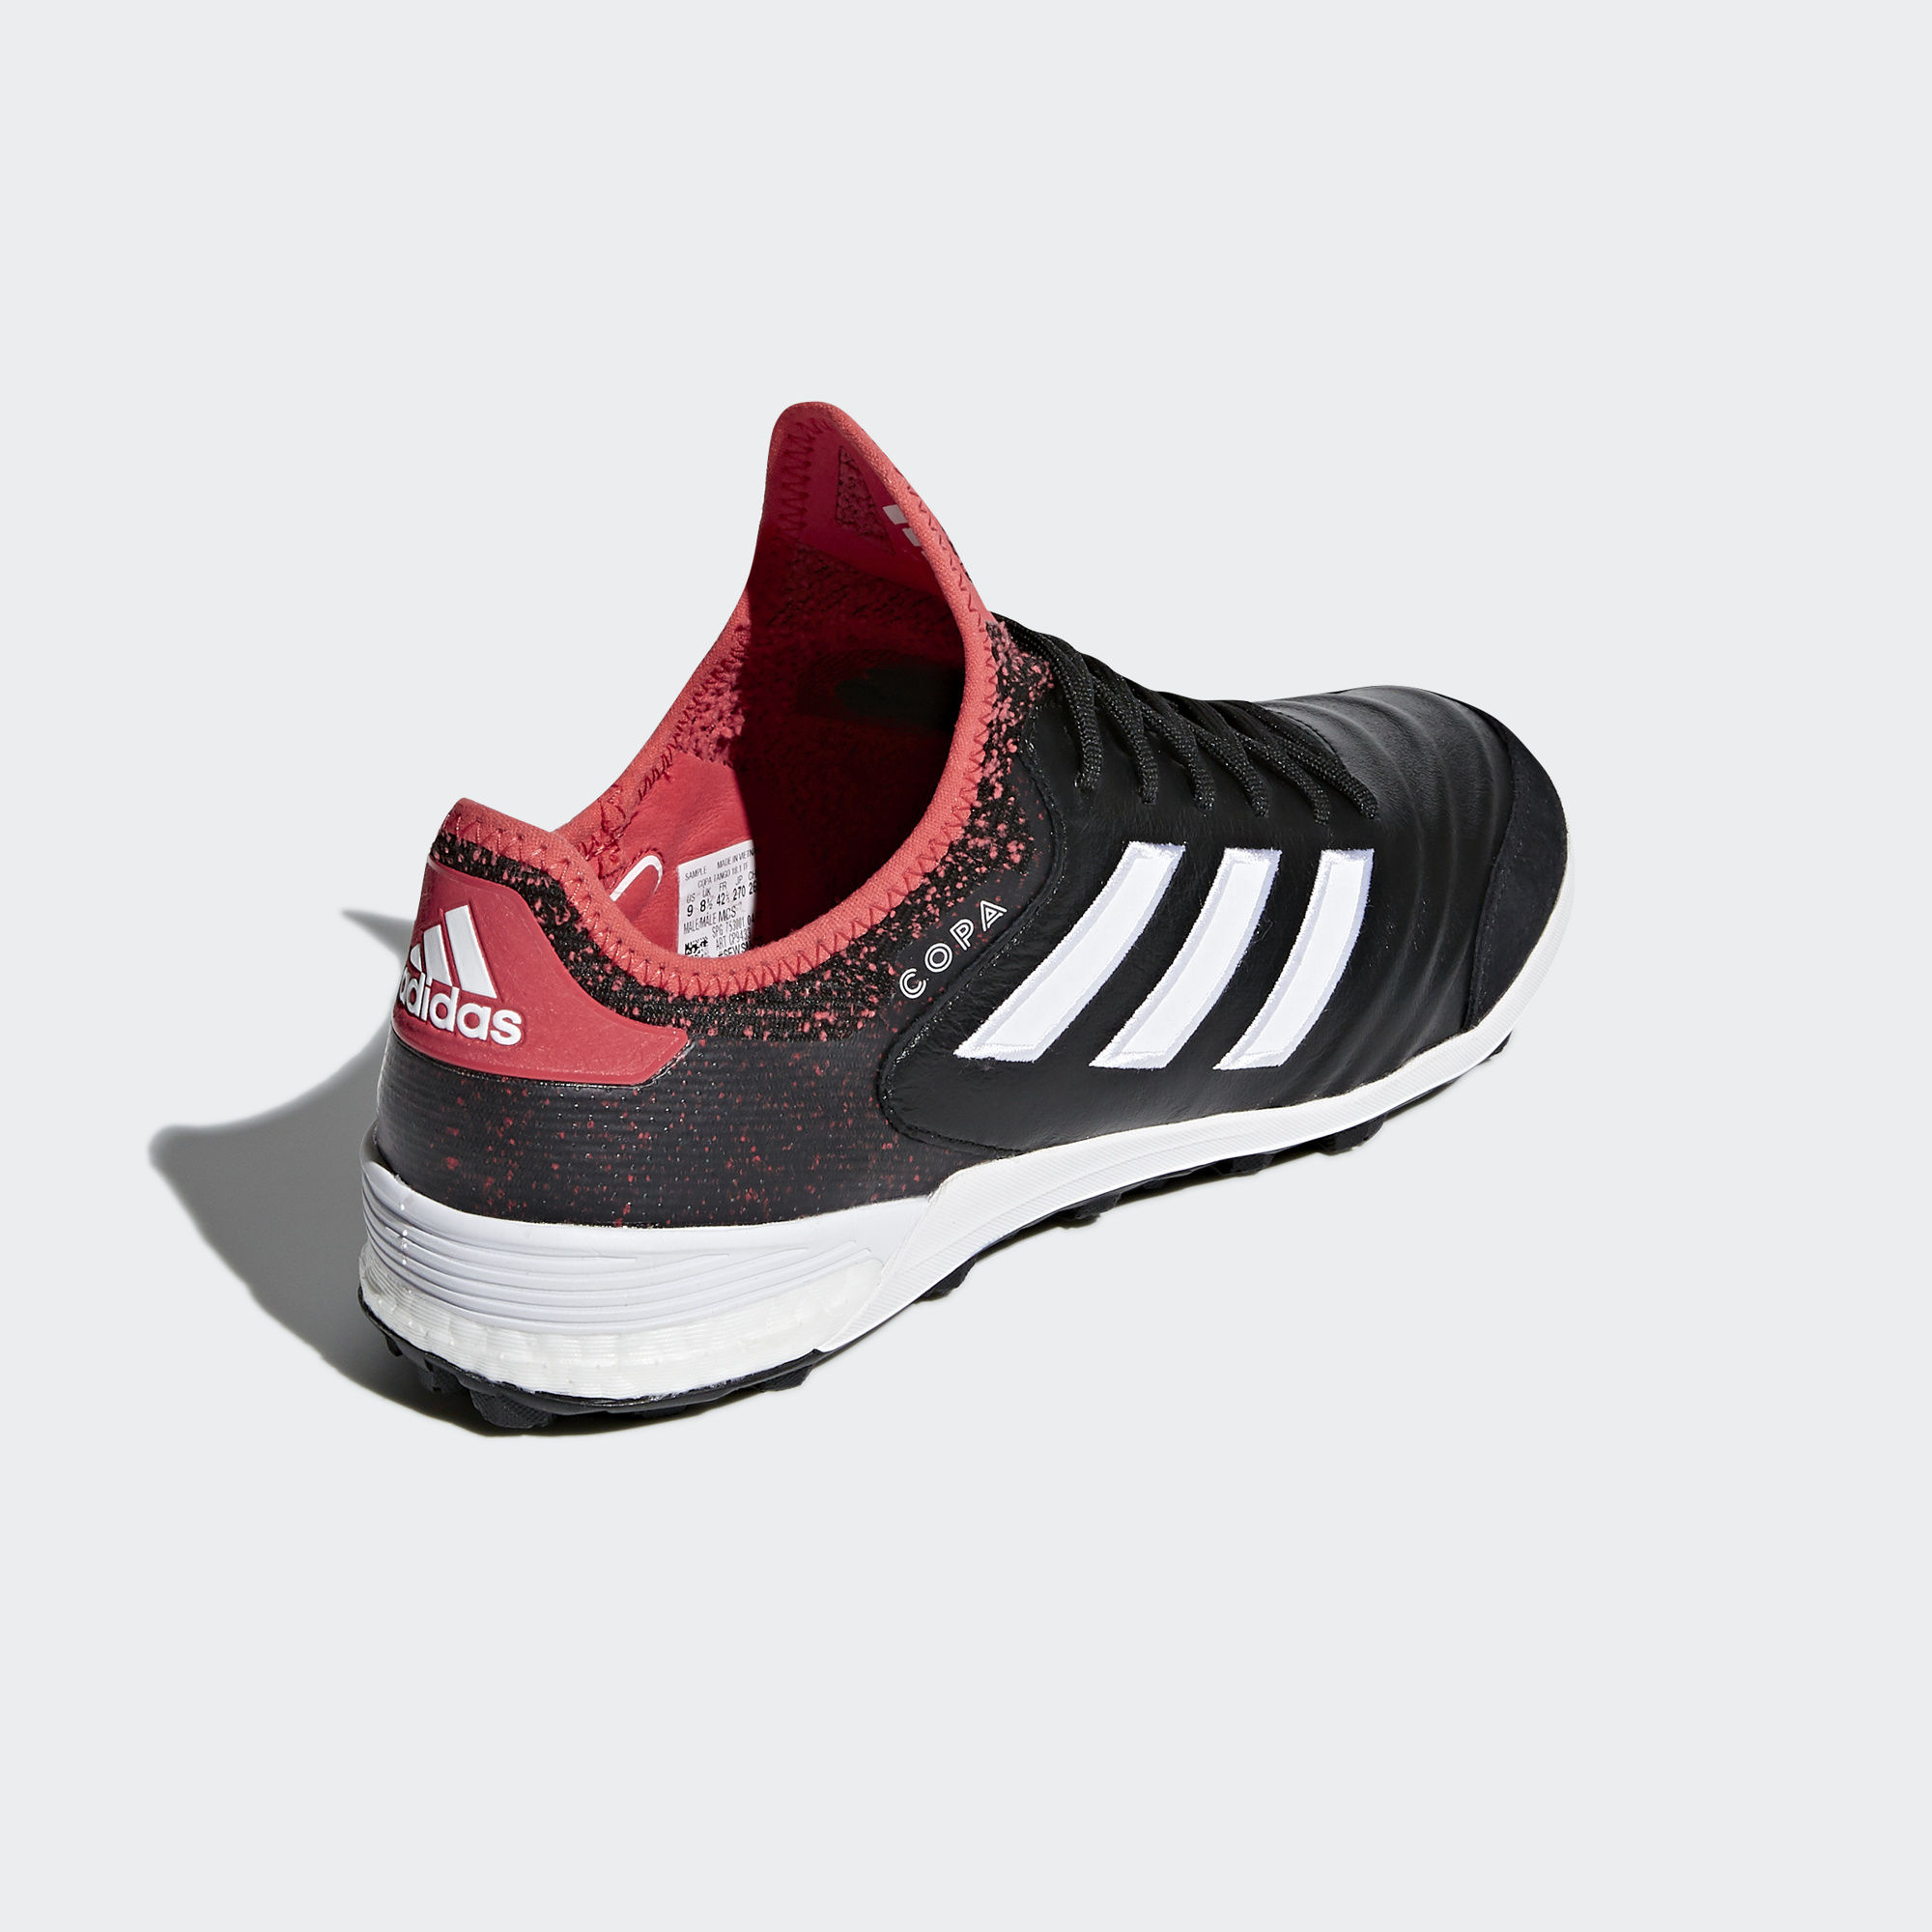 Click to enlarge image  adidas copa tango 18 1 turf boots core black ftwr white real coral a.jpg   Click to enlarge image ... 607922862